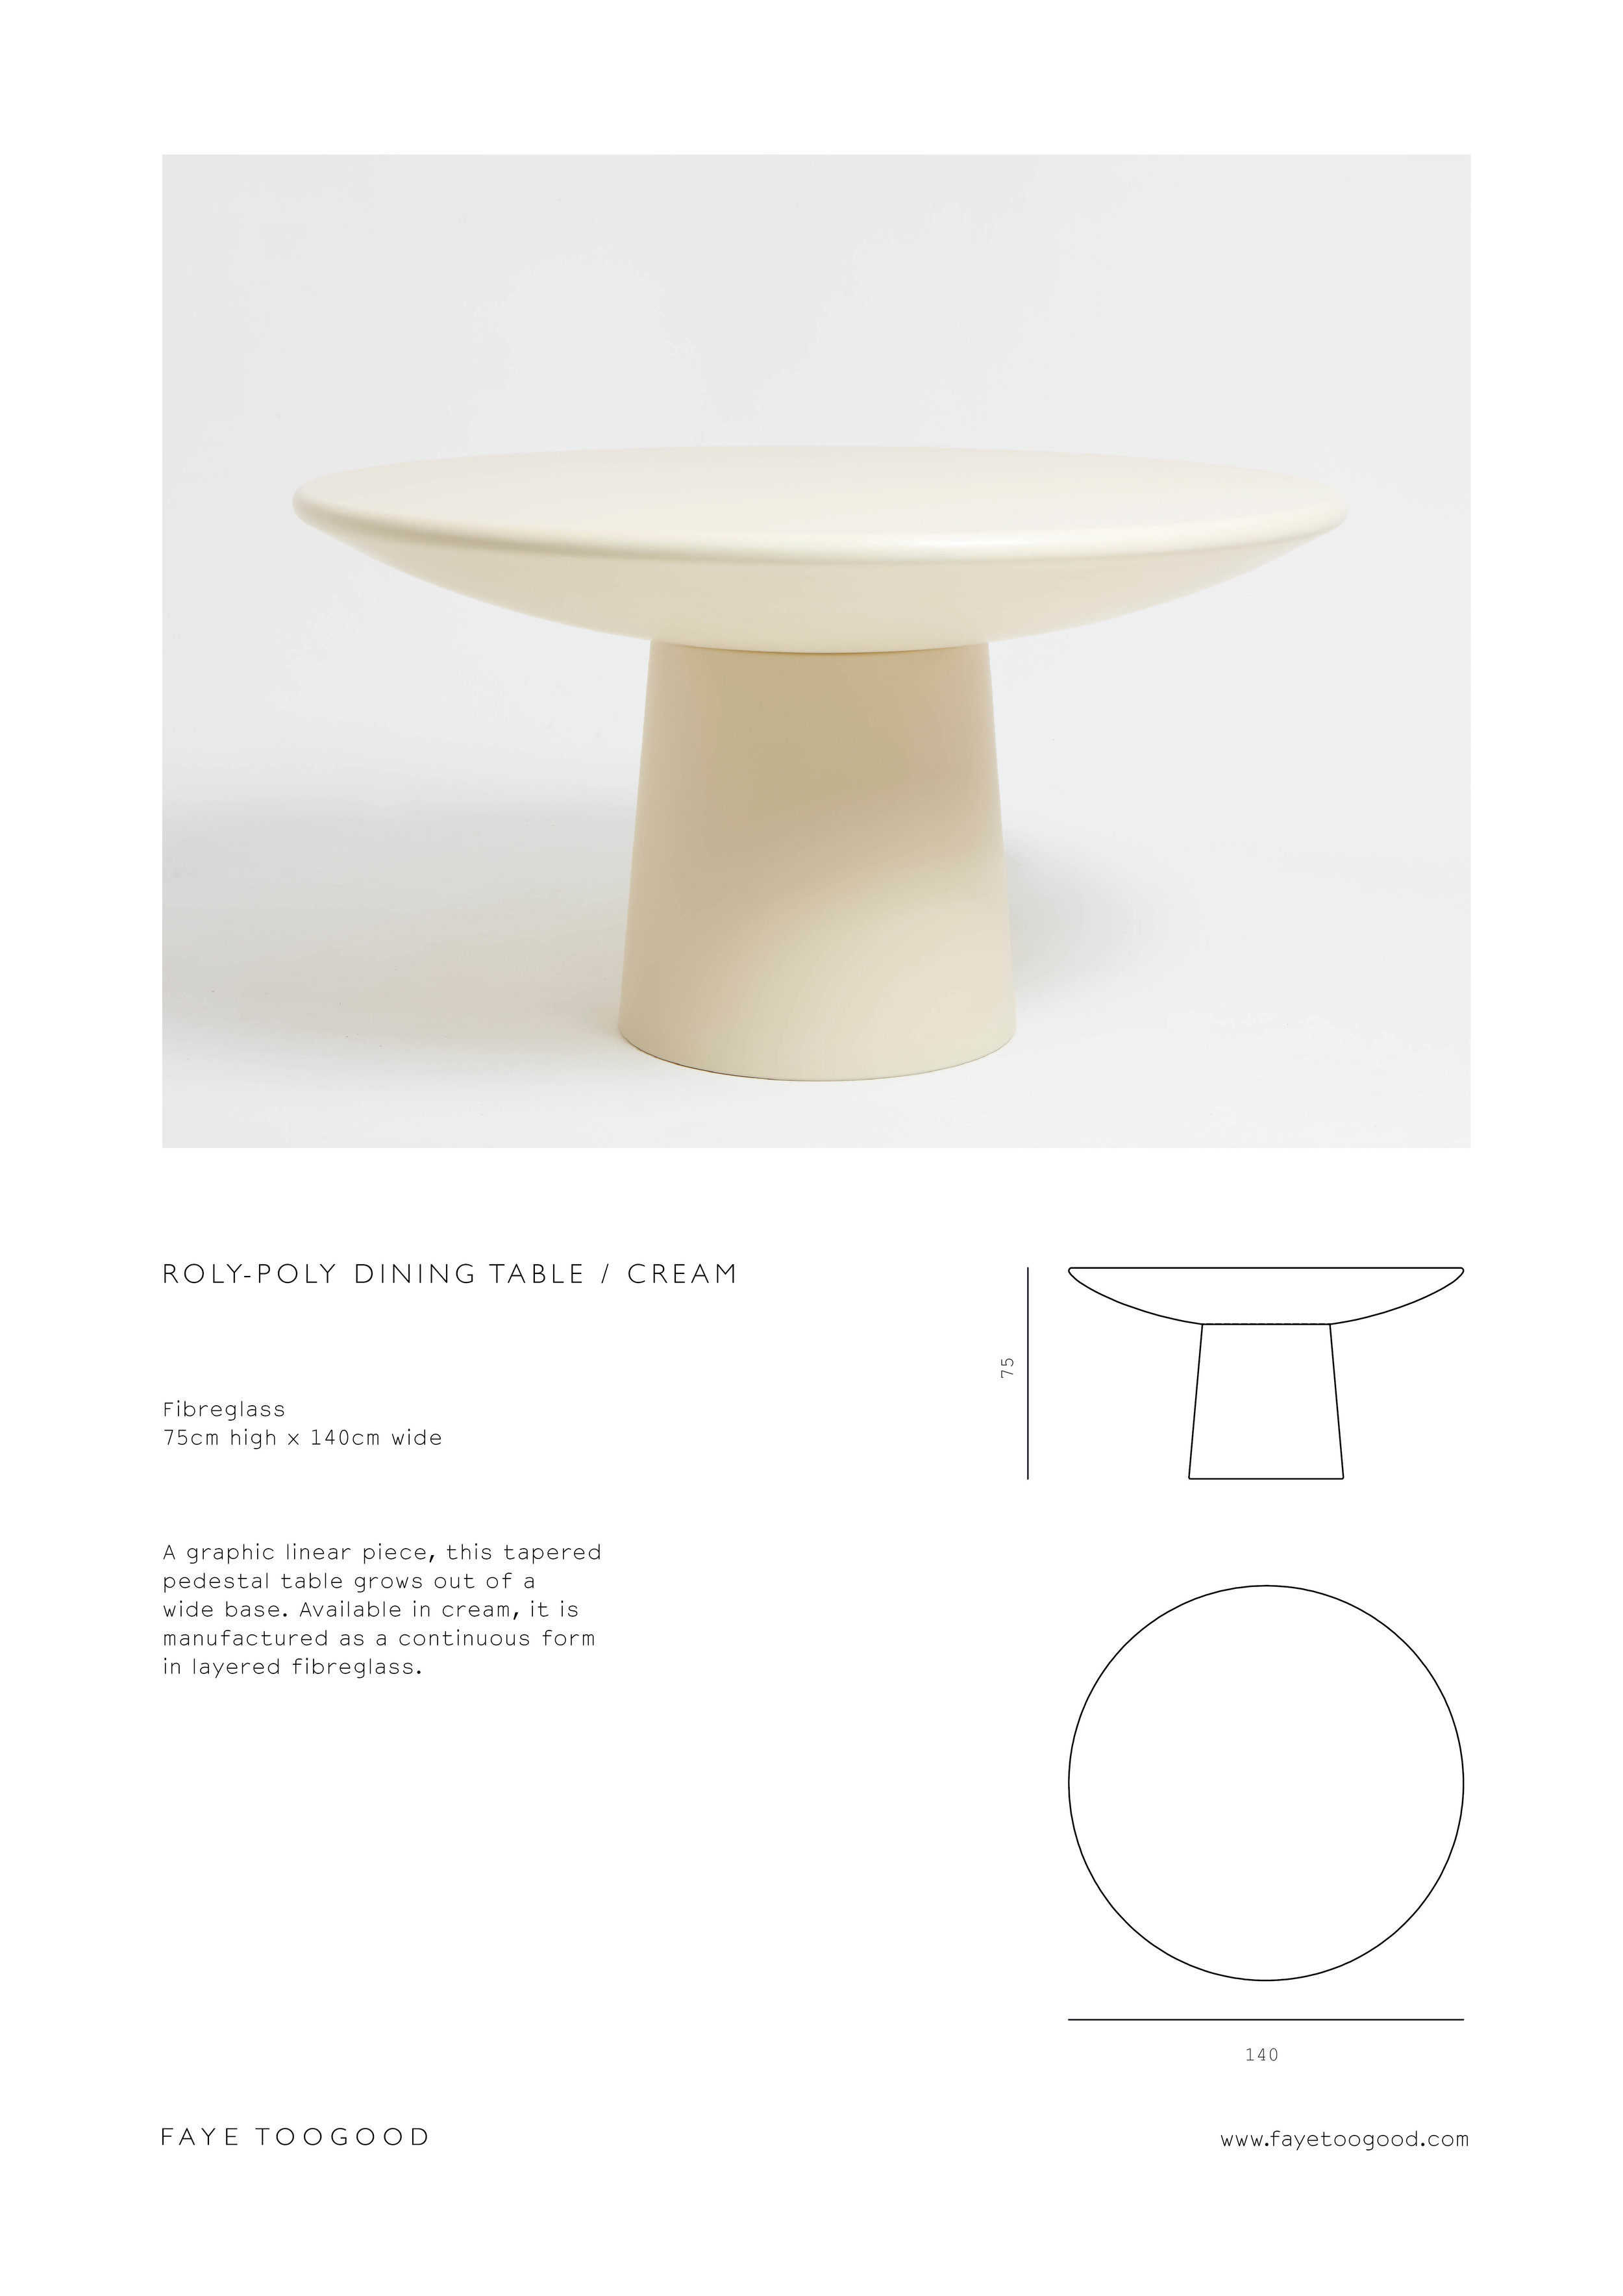 Roly Poly Dining Table CREAM_specification sheet.jpg